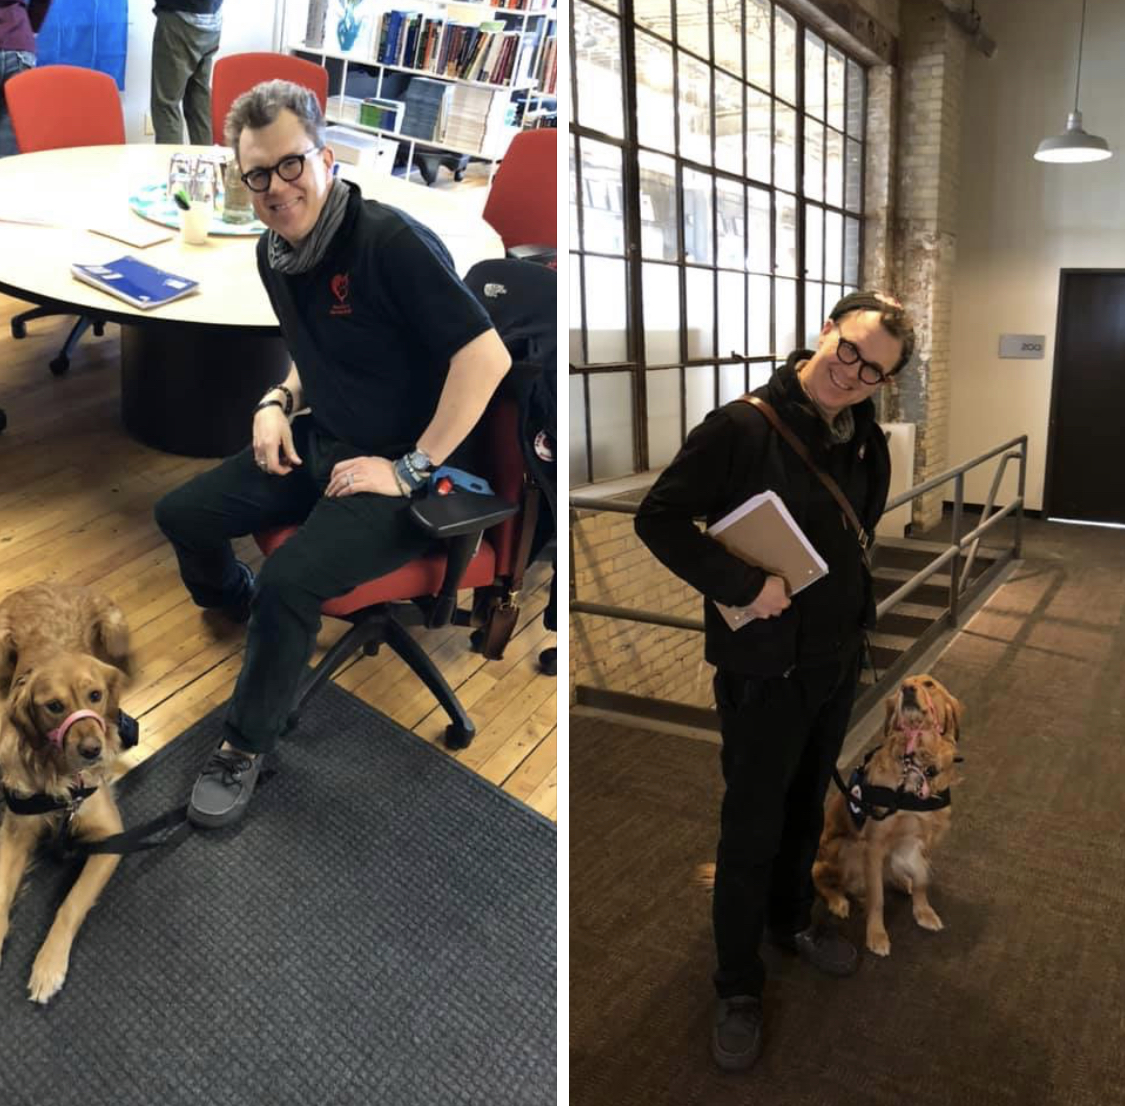 Service dog in office